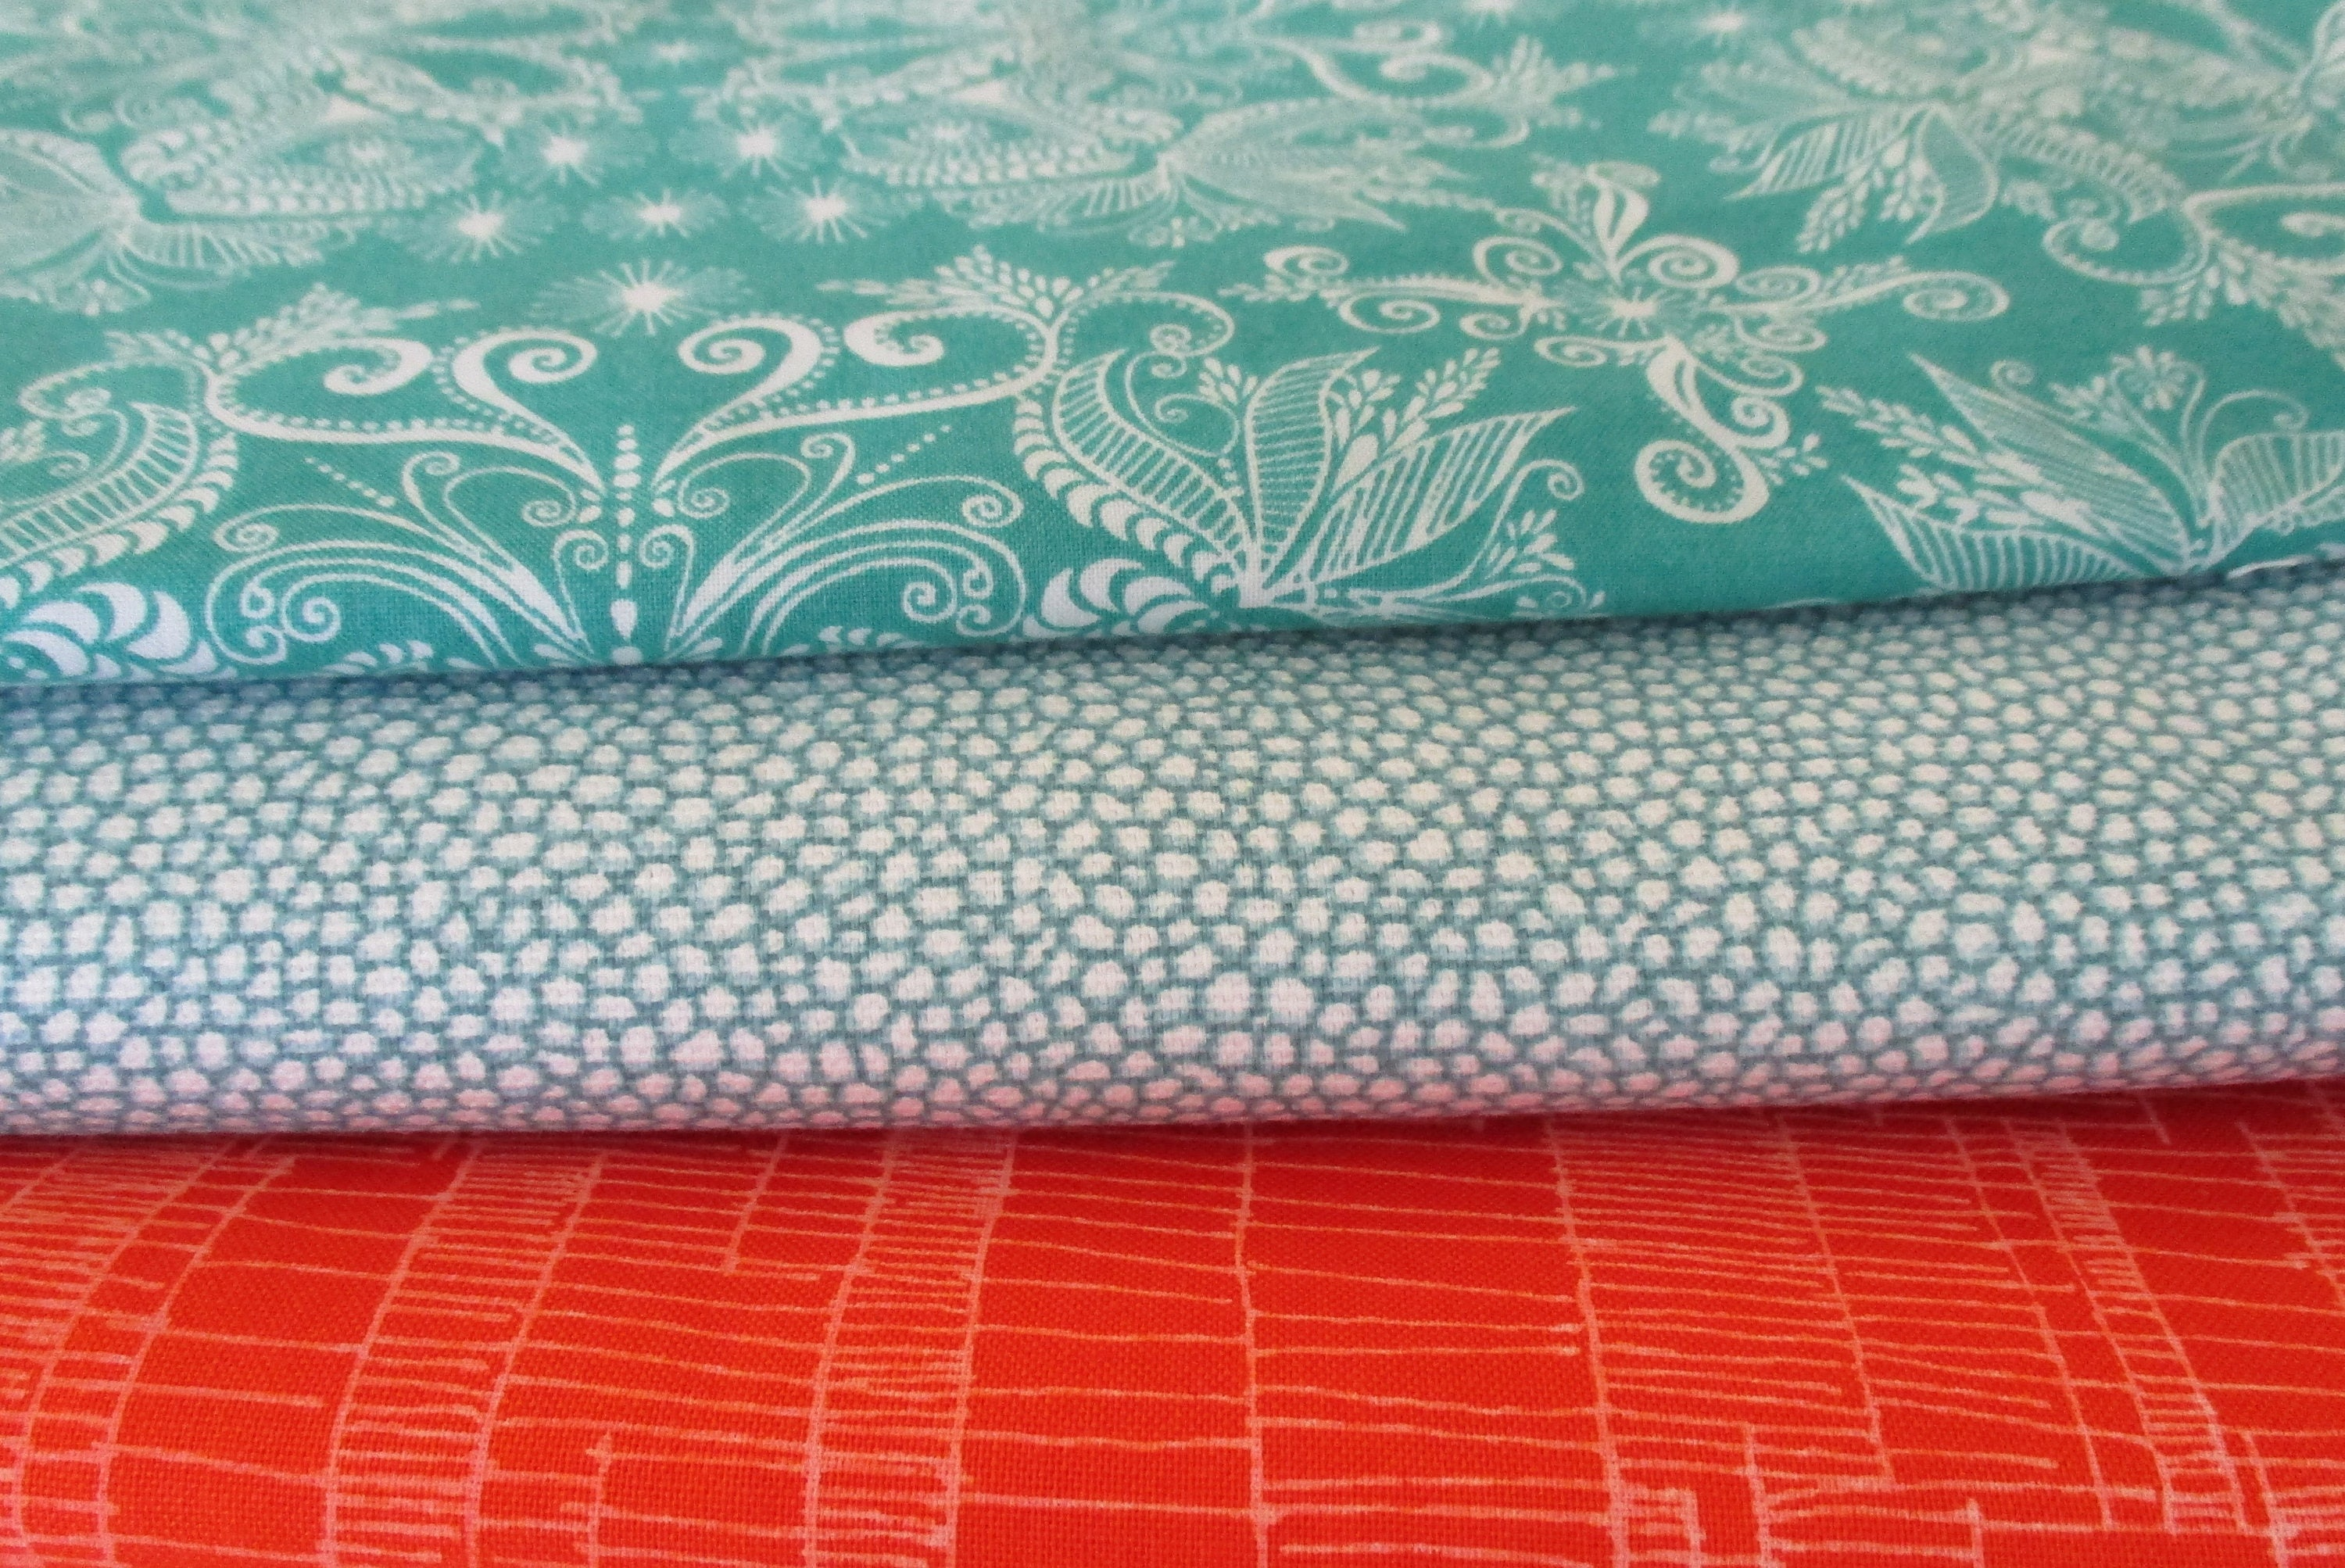 Sale quilting fabric bundle fabric by the yard 1 2 yard for Fabric for sale by the yard